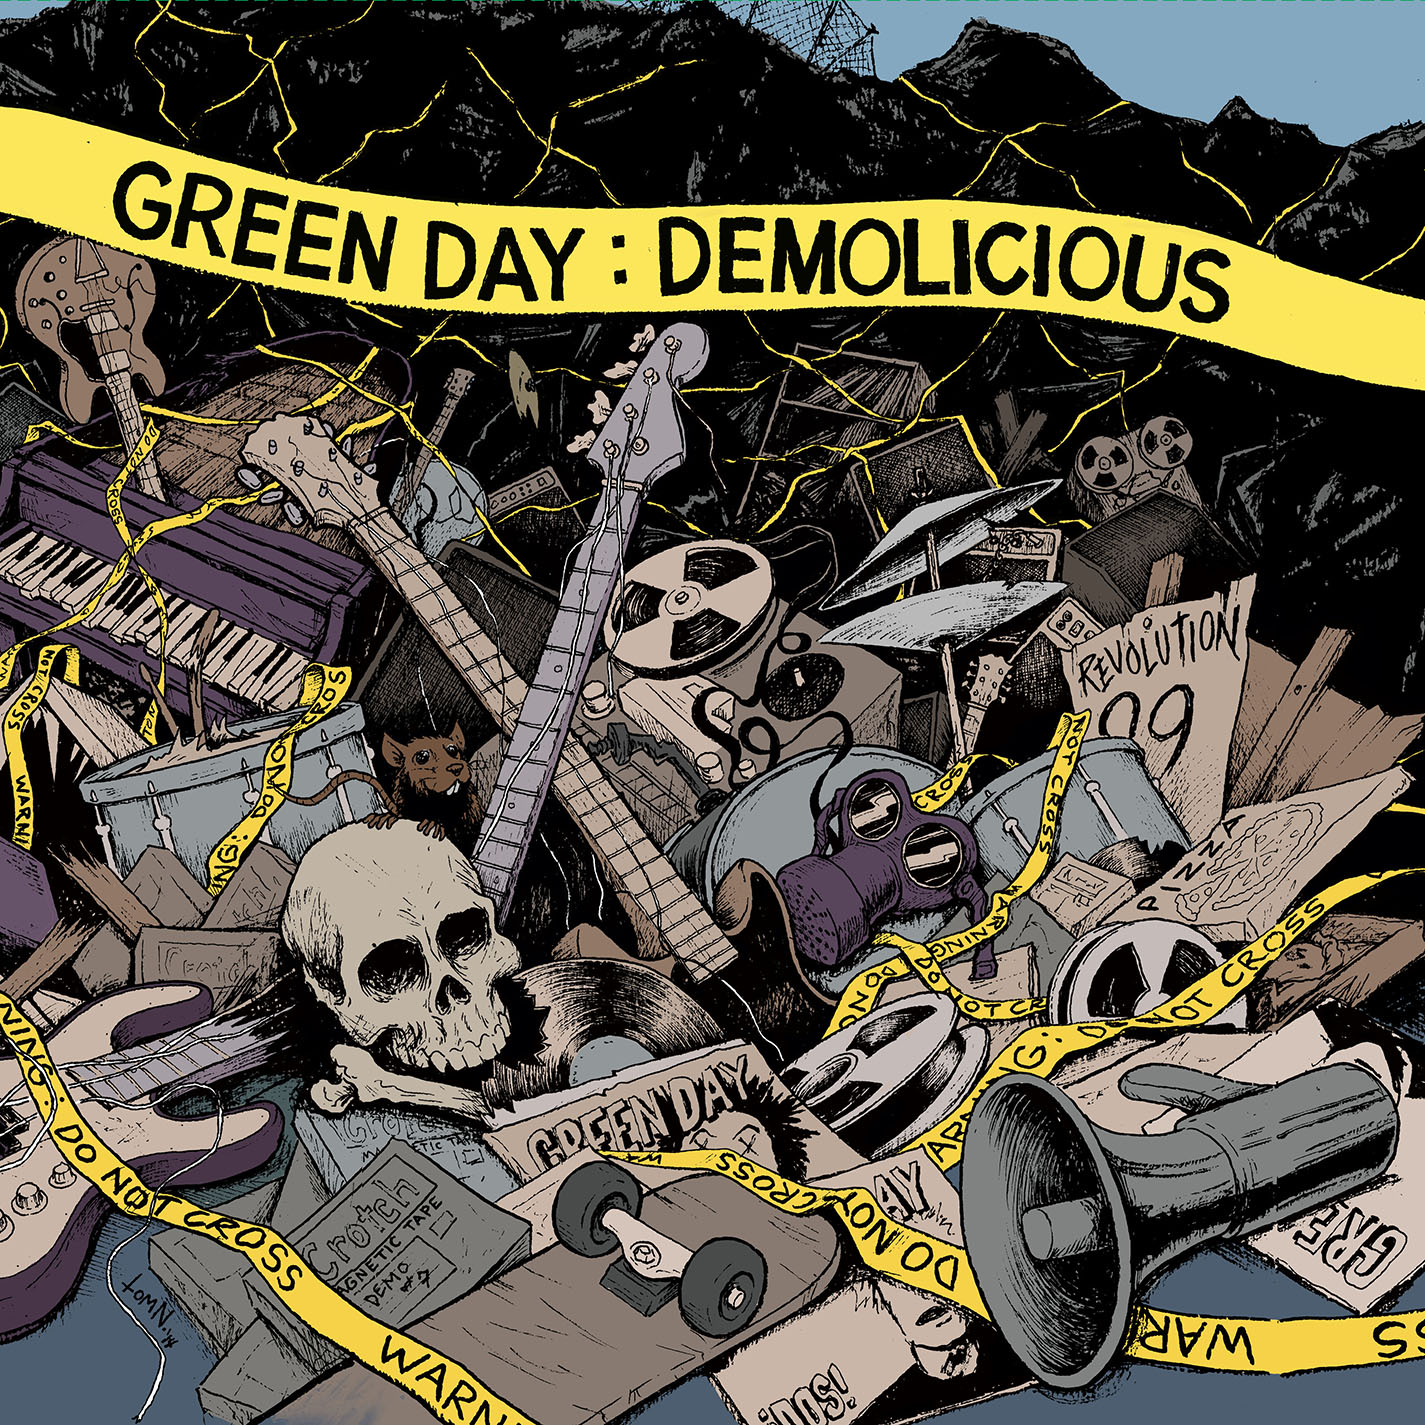 Green day bluegrass: pickin' on green day. A bluegrass tribute by.